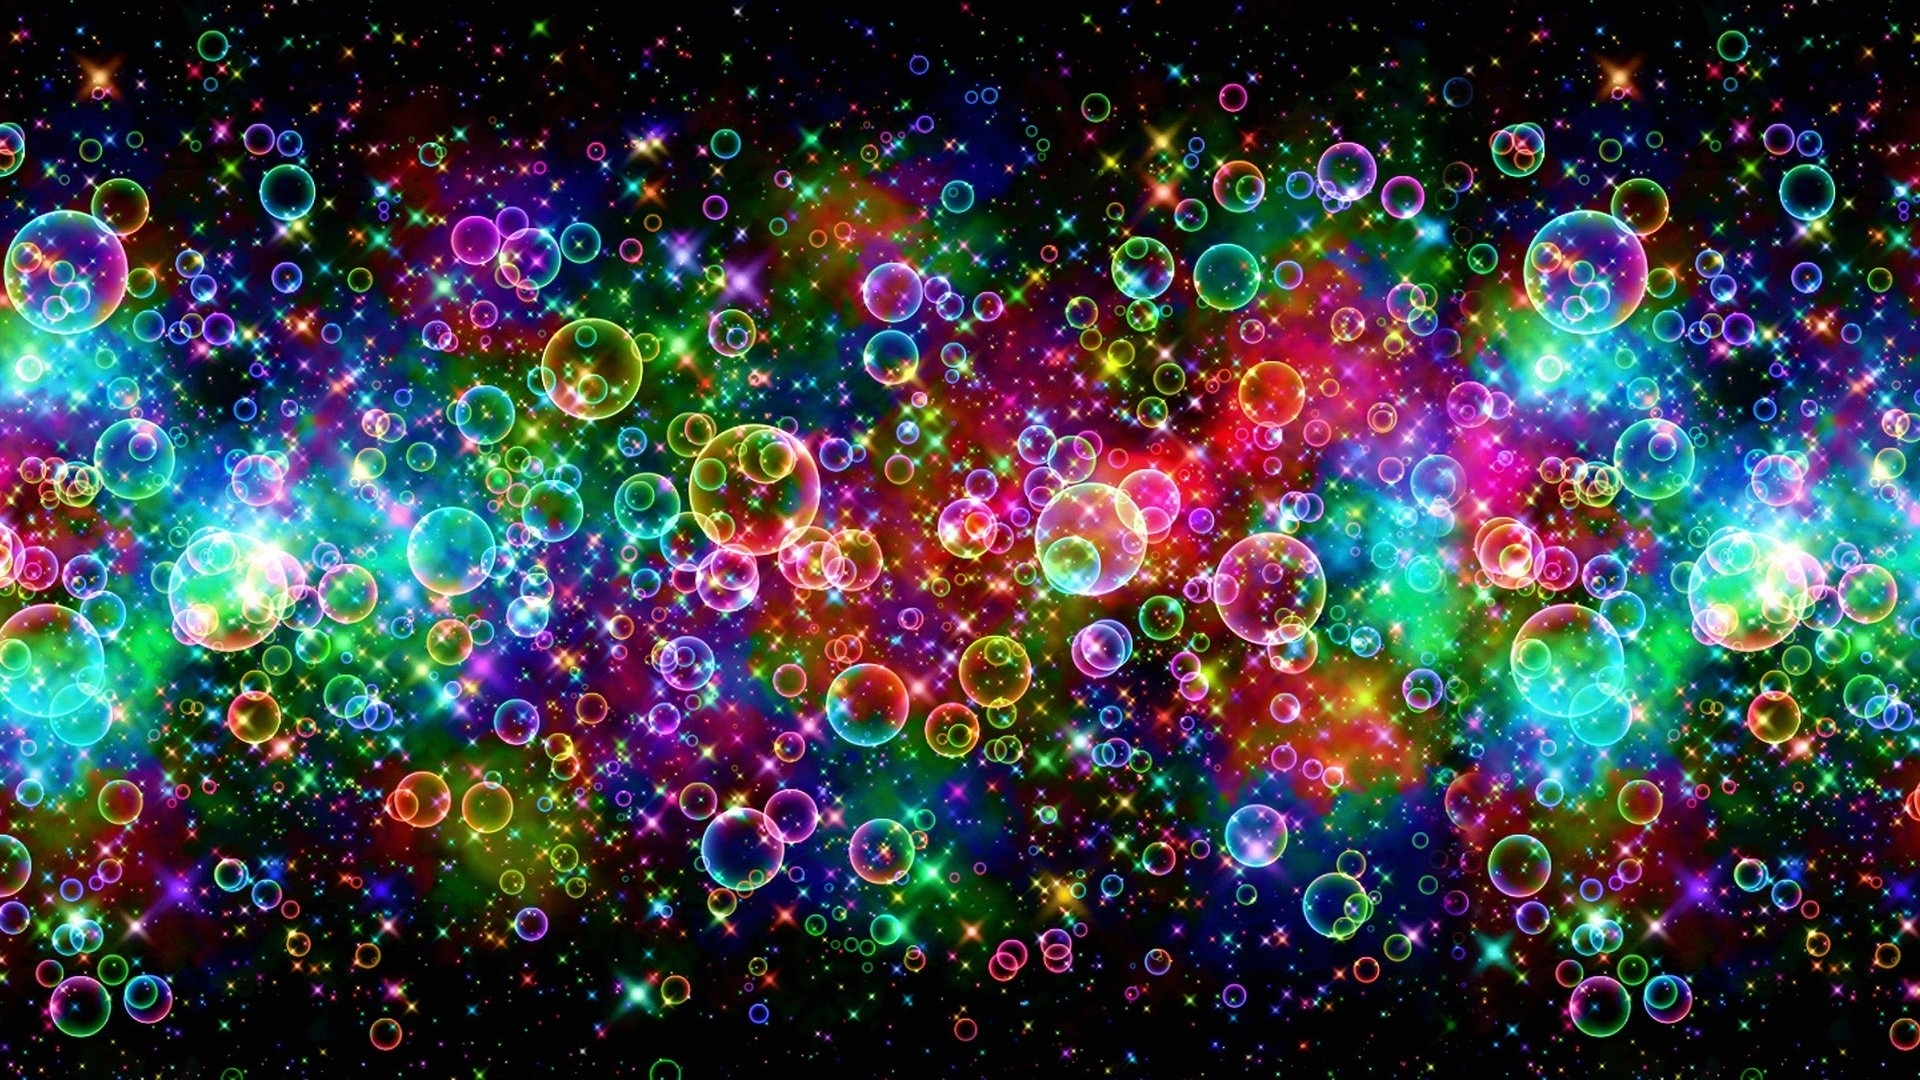 wallpaper balls and lights abstract 1920 x 1080 full hd - 1920 x